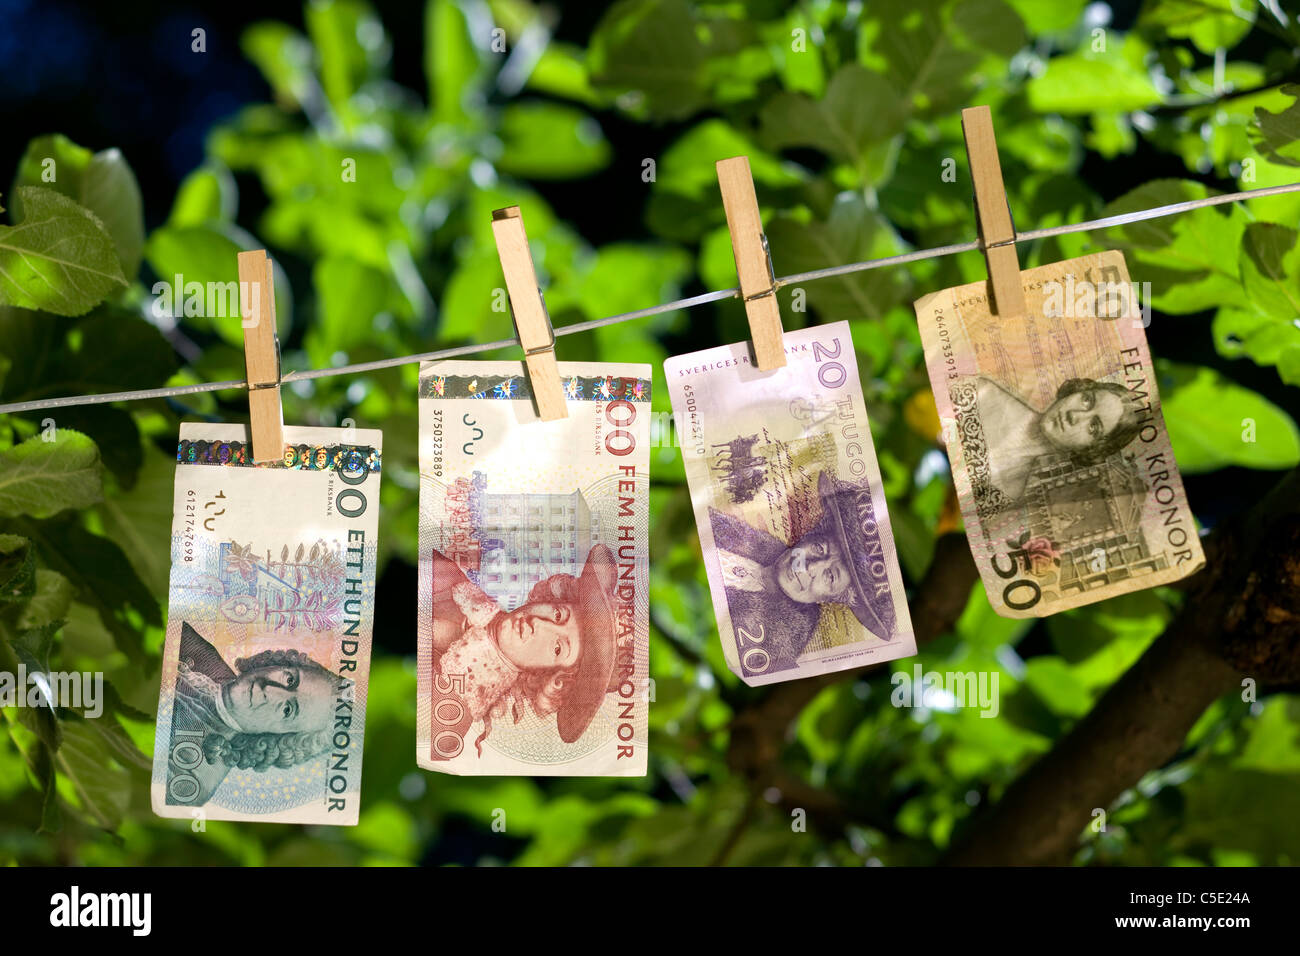 Close-up of banknotes clipped to the string against leaves - Stock Image